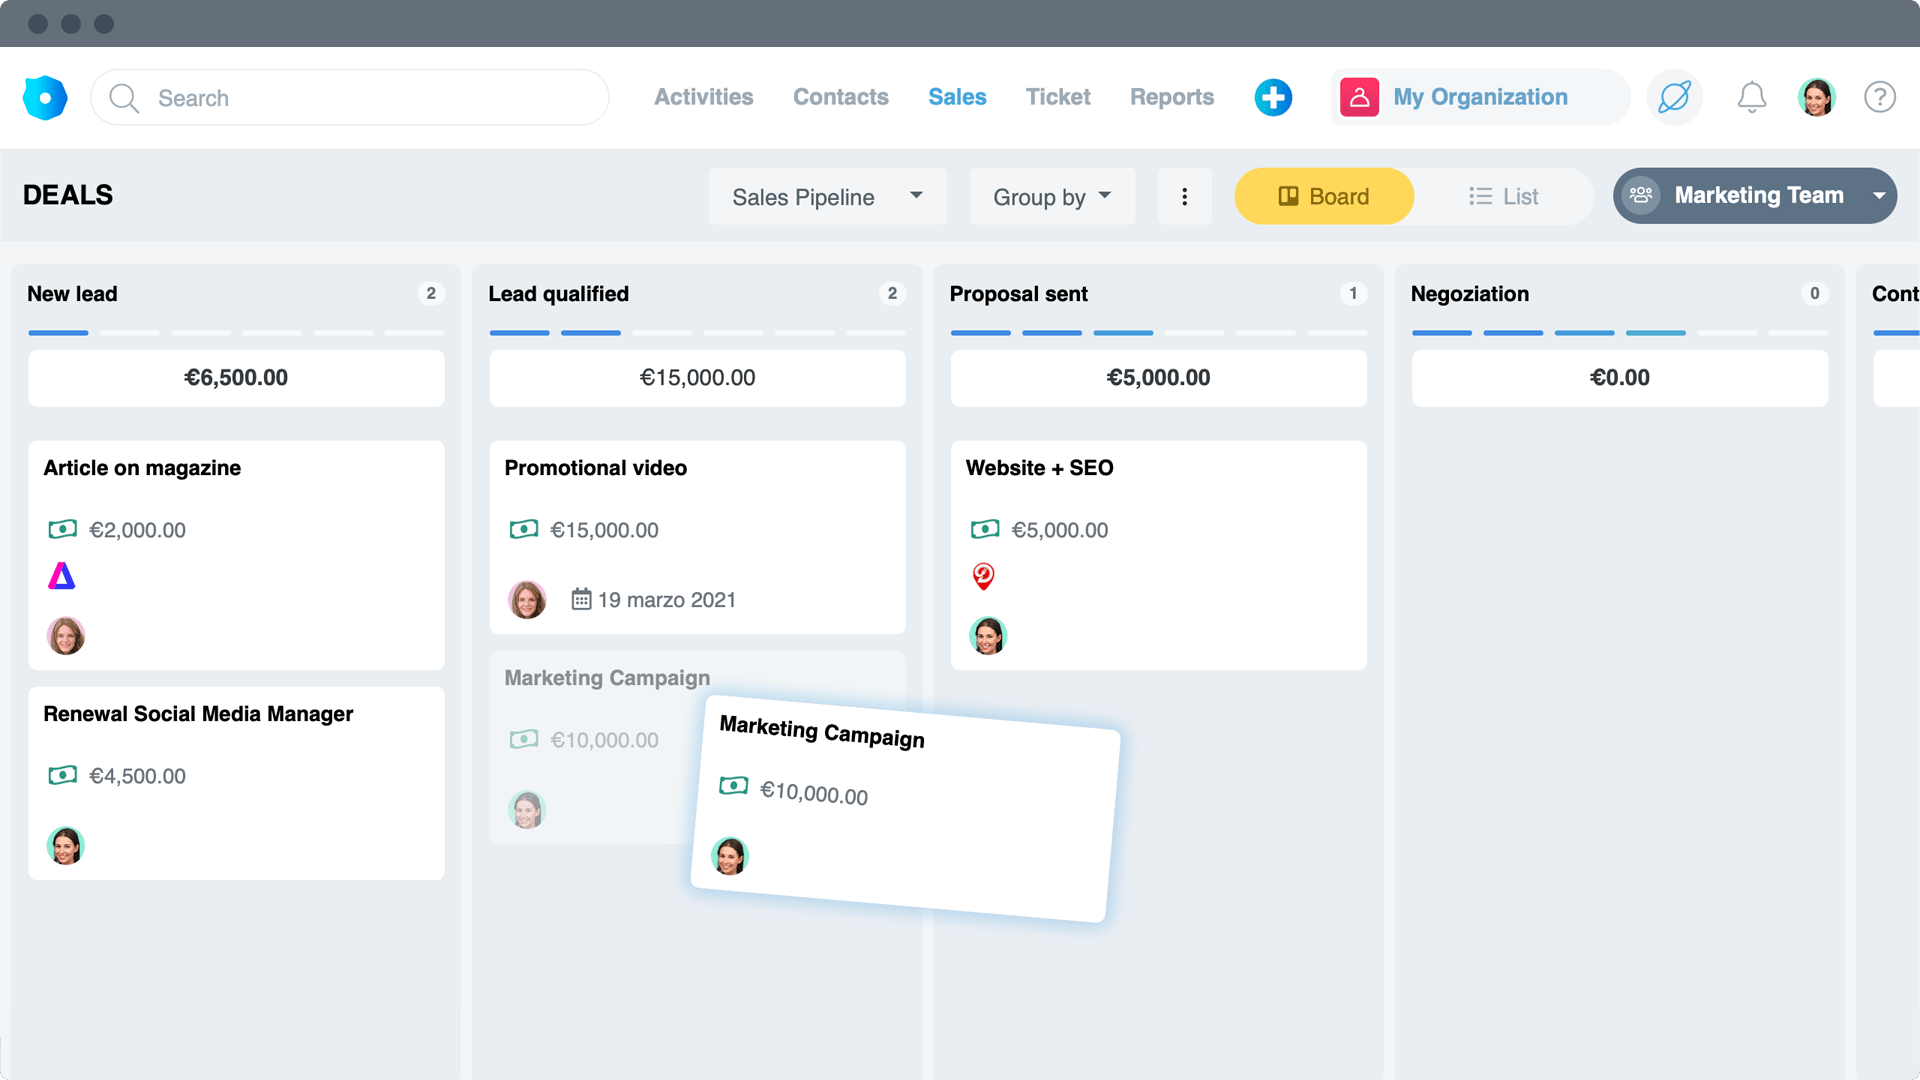 Create sales leads on saved contacts, define the amount and the sales phase. Through different pipelines you will have everything under control and the follow-up with contacts will be immediate.